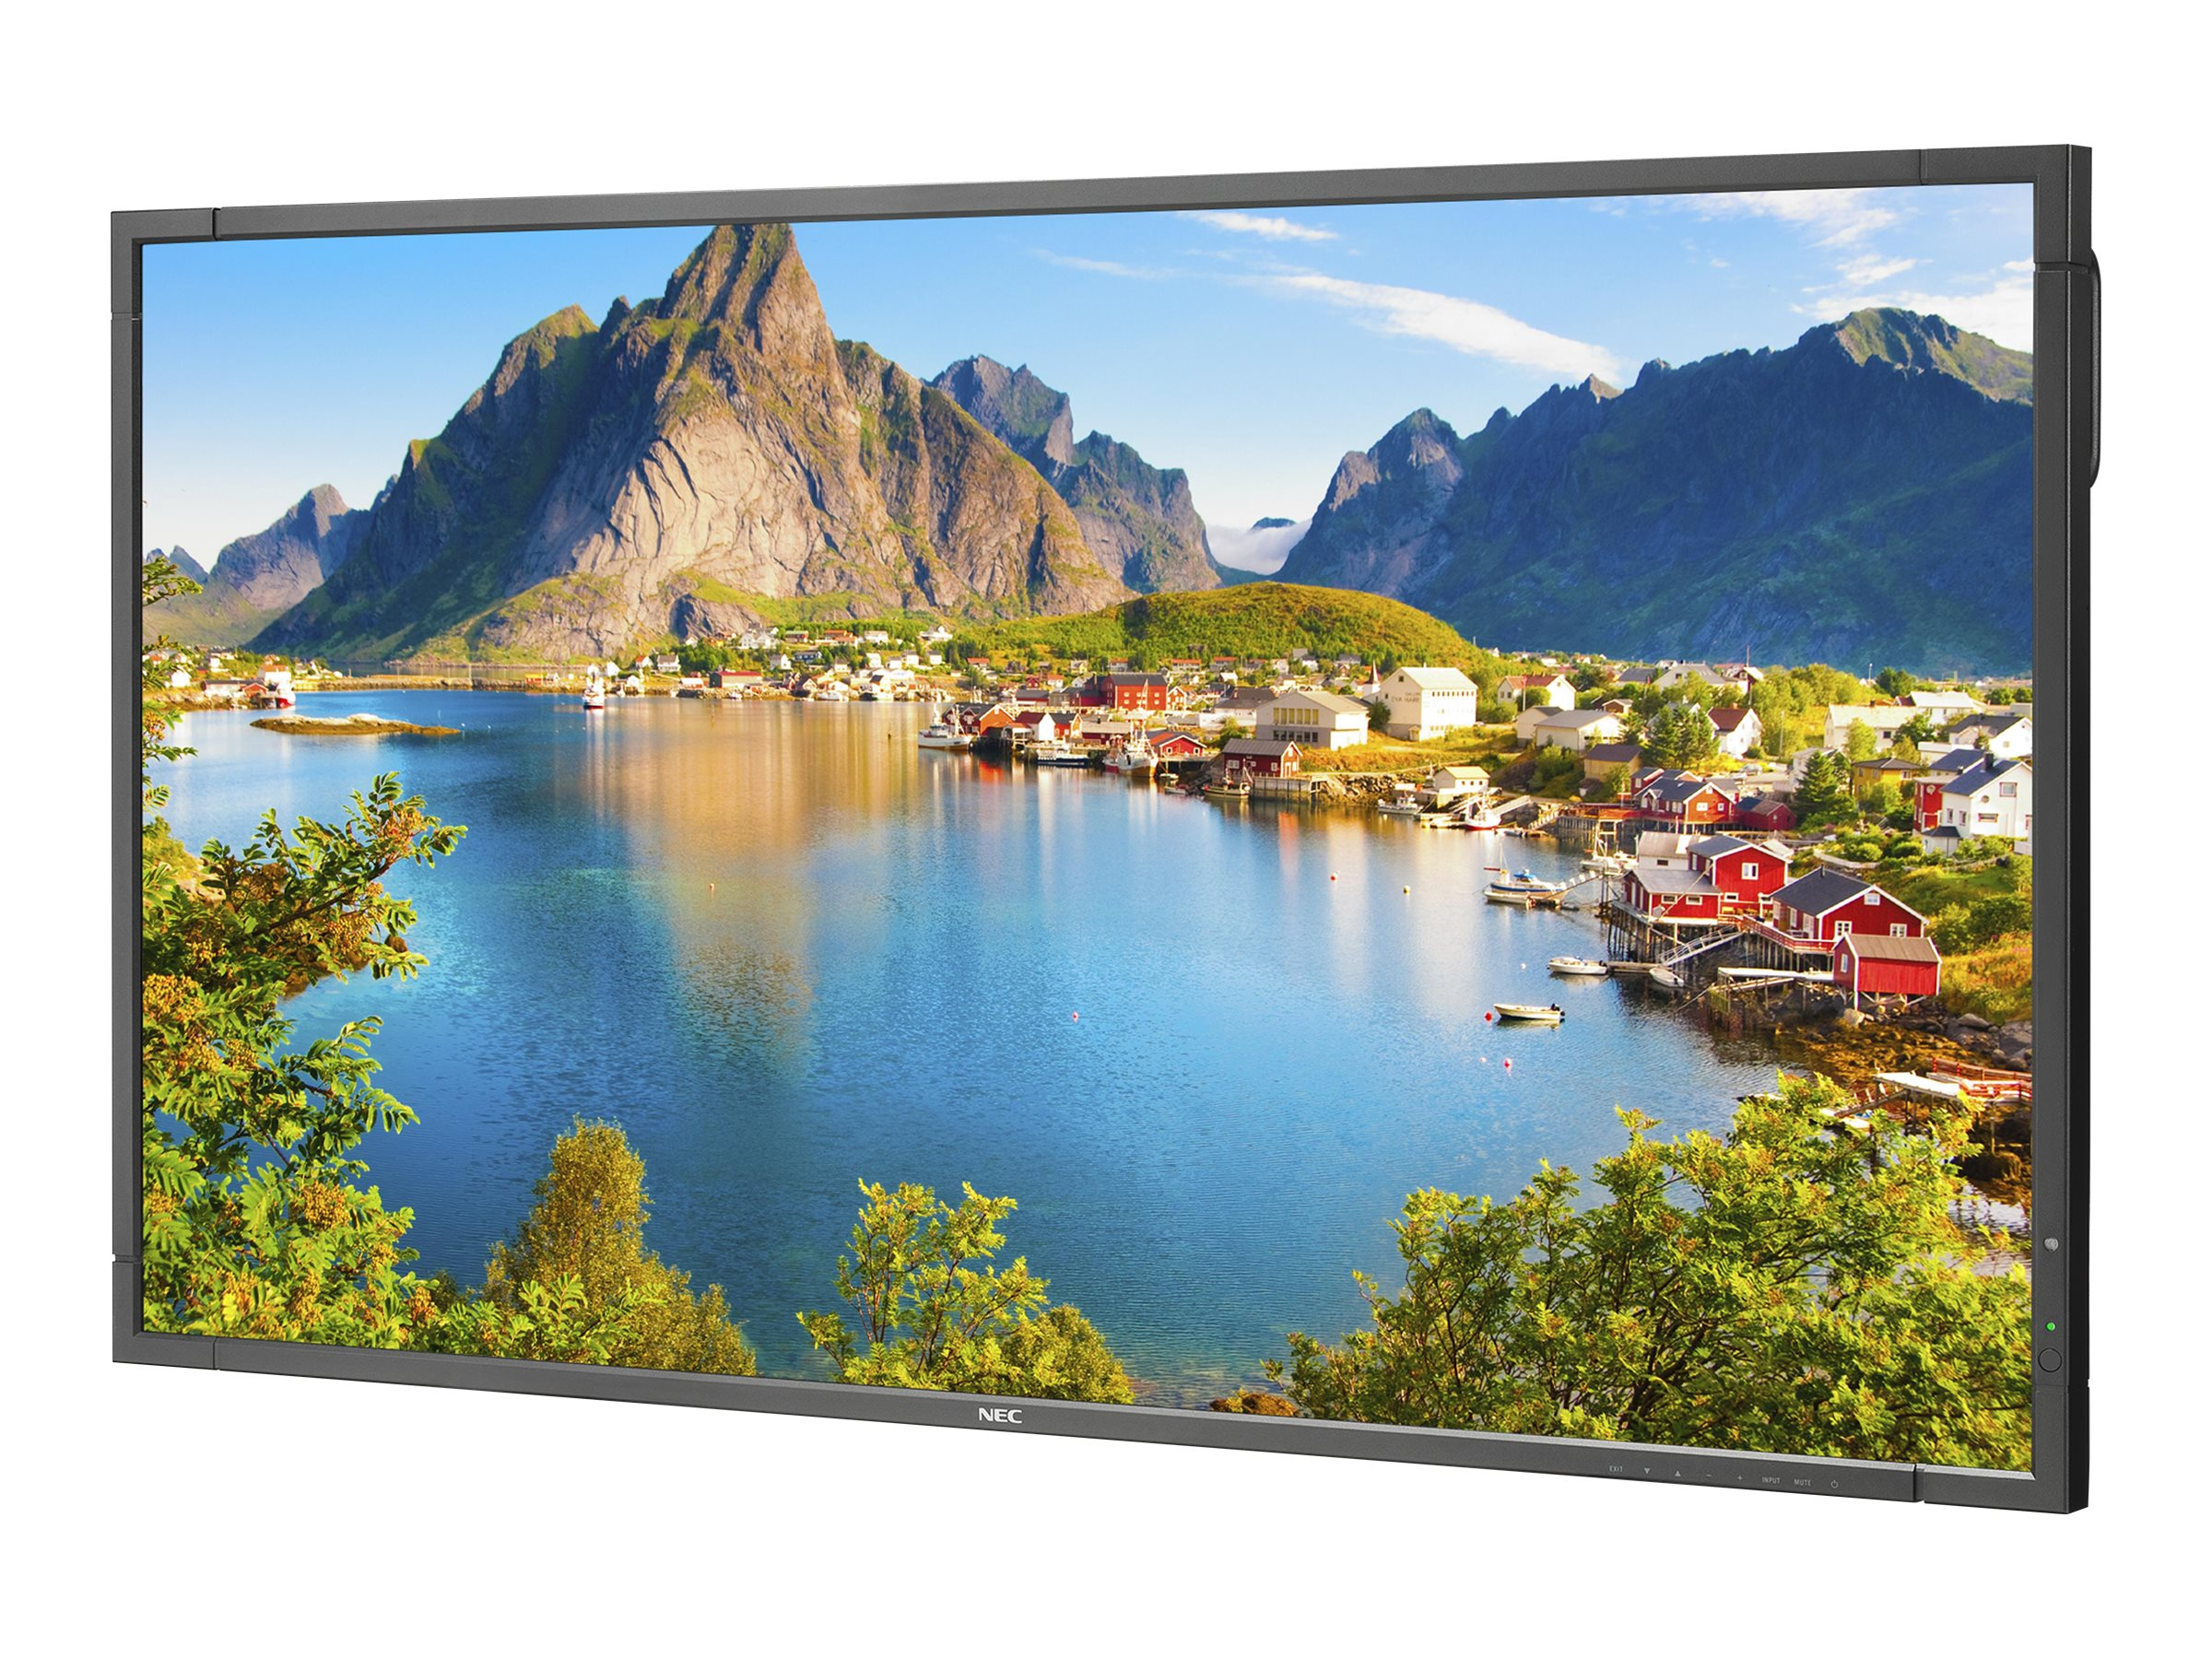 NEC 80 E805 Full HD LED-LCD Display with OPS PC, E805-PC2